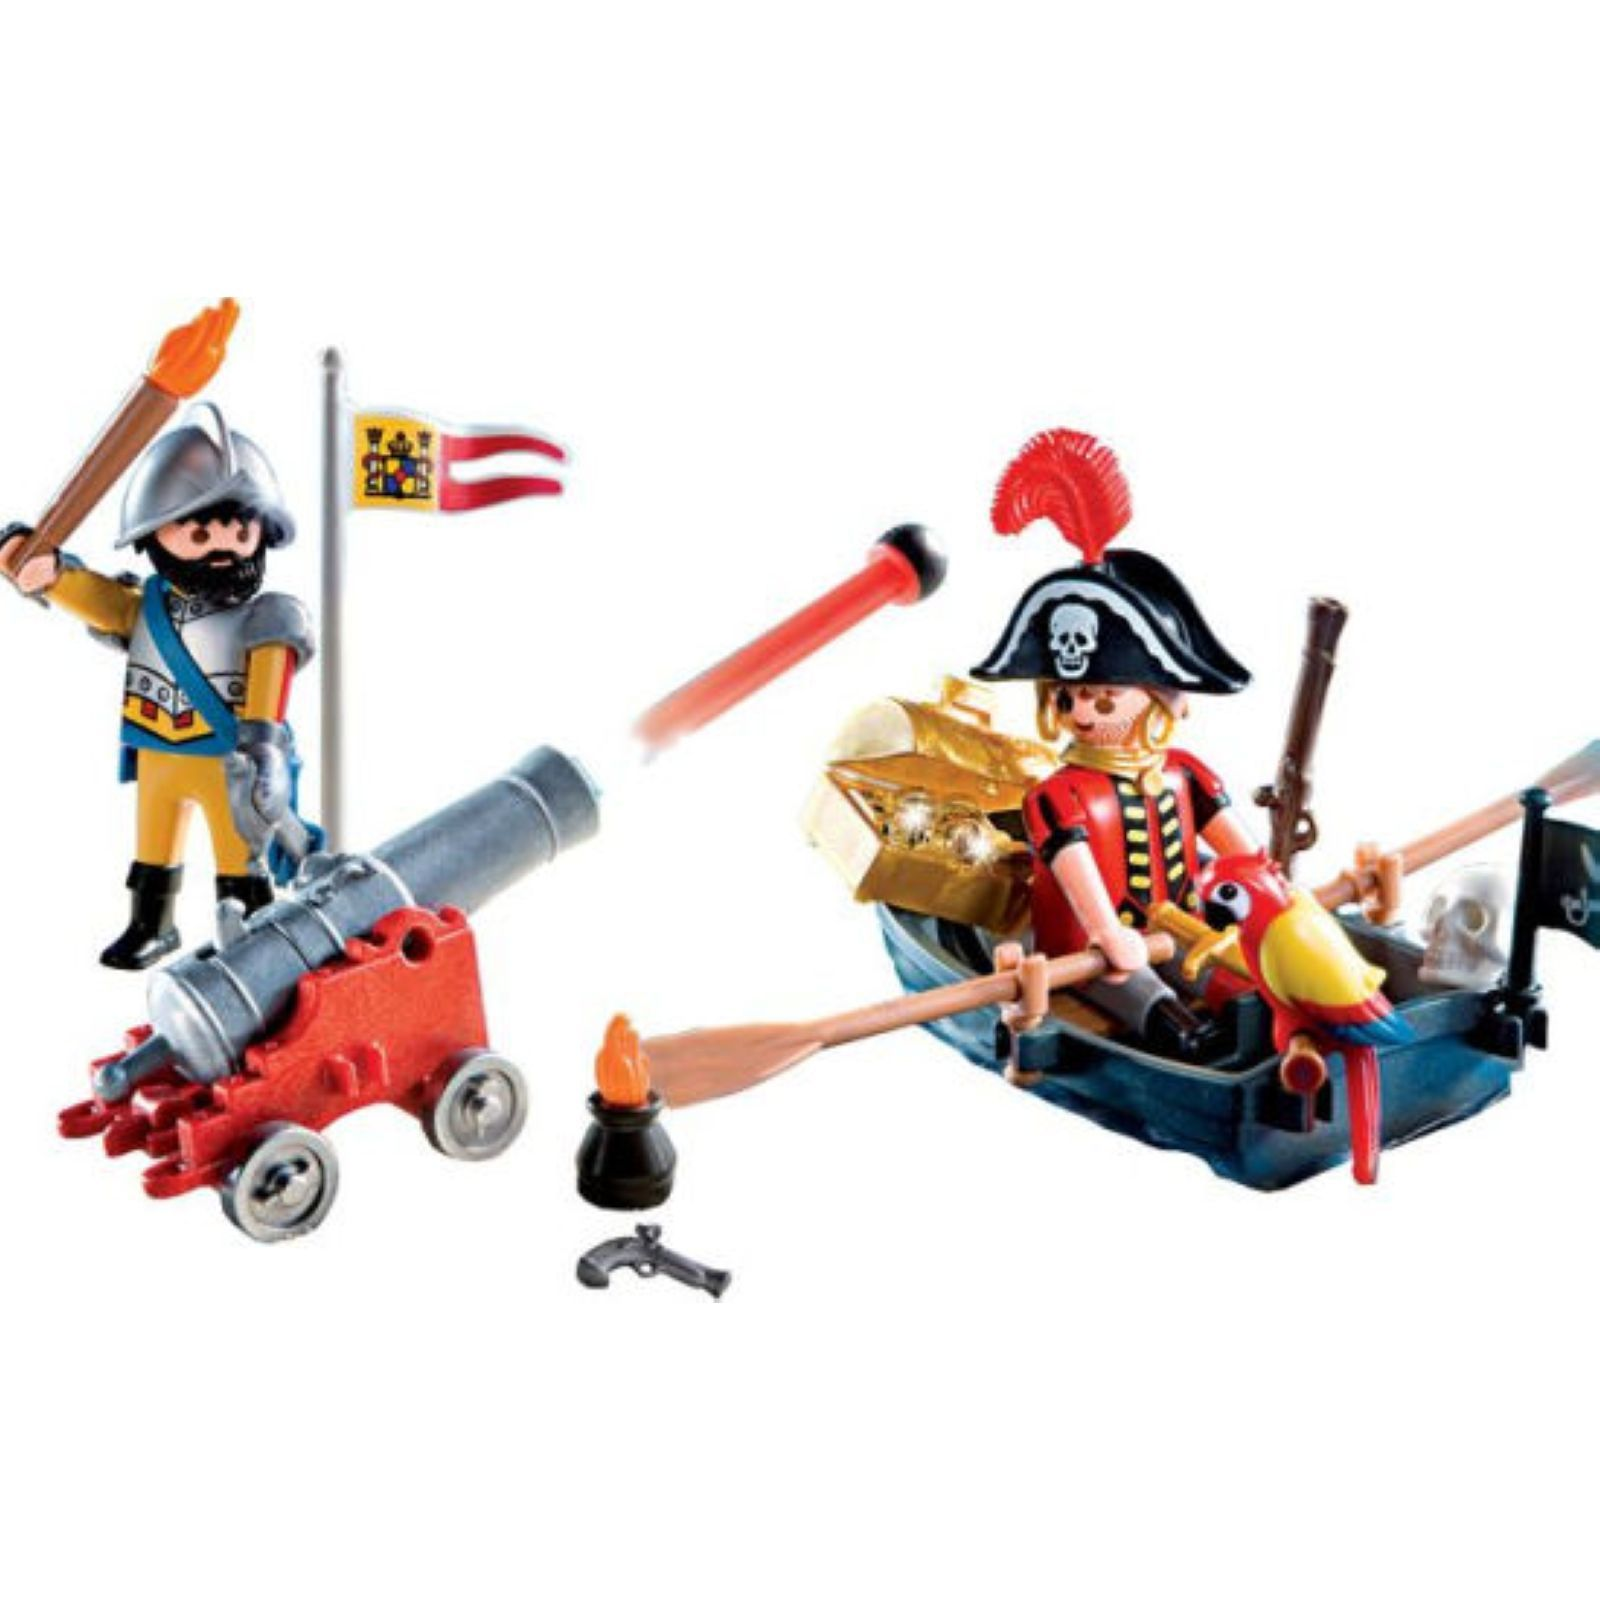 Playmobil valisette pirate et soldat brandalley - Playmobil soldat ...